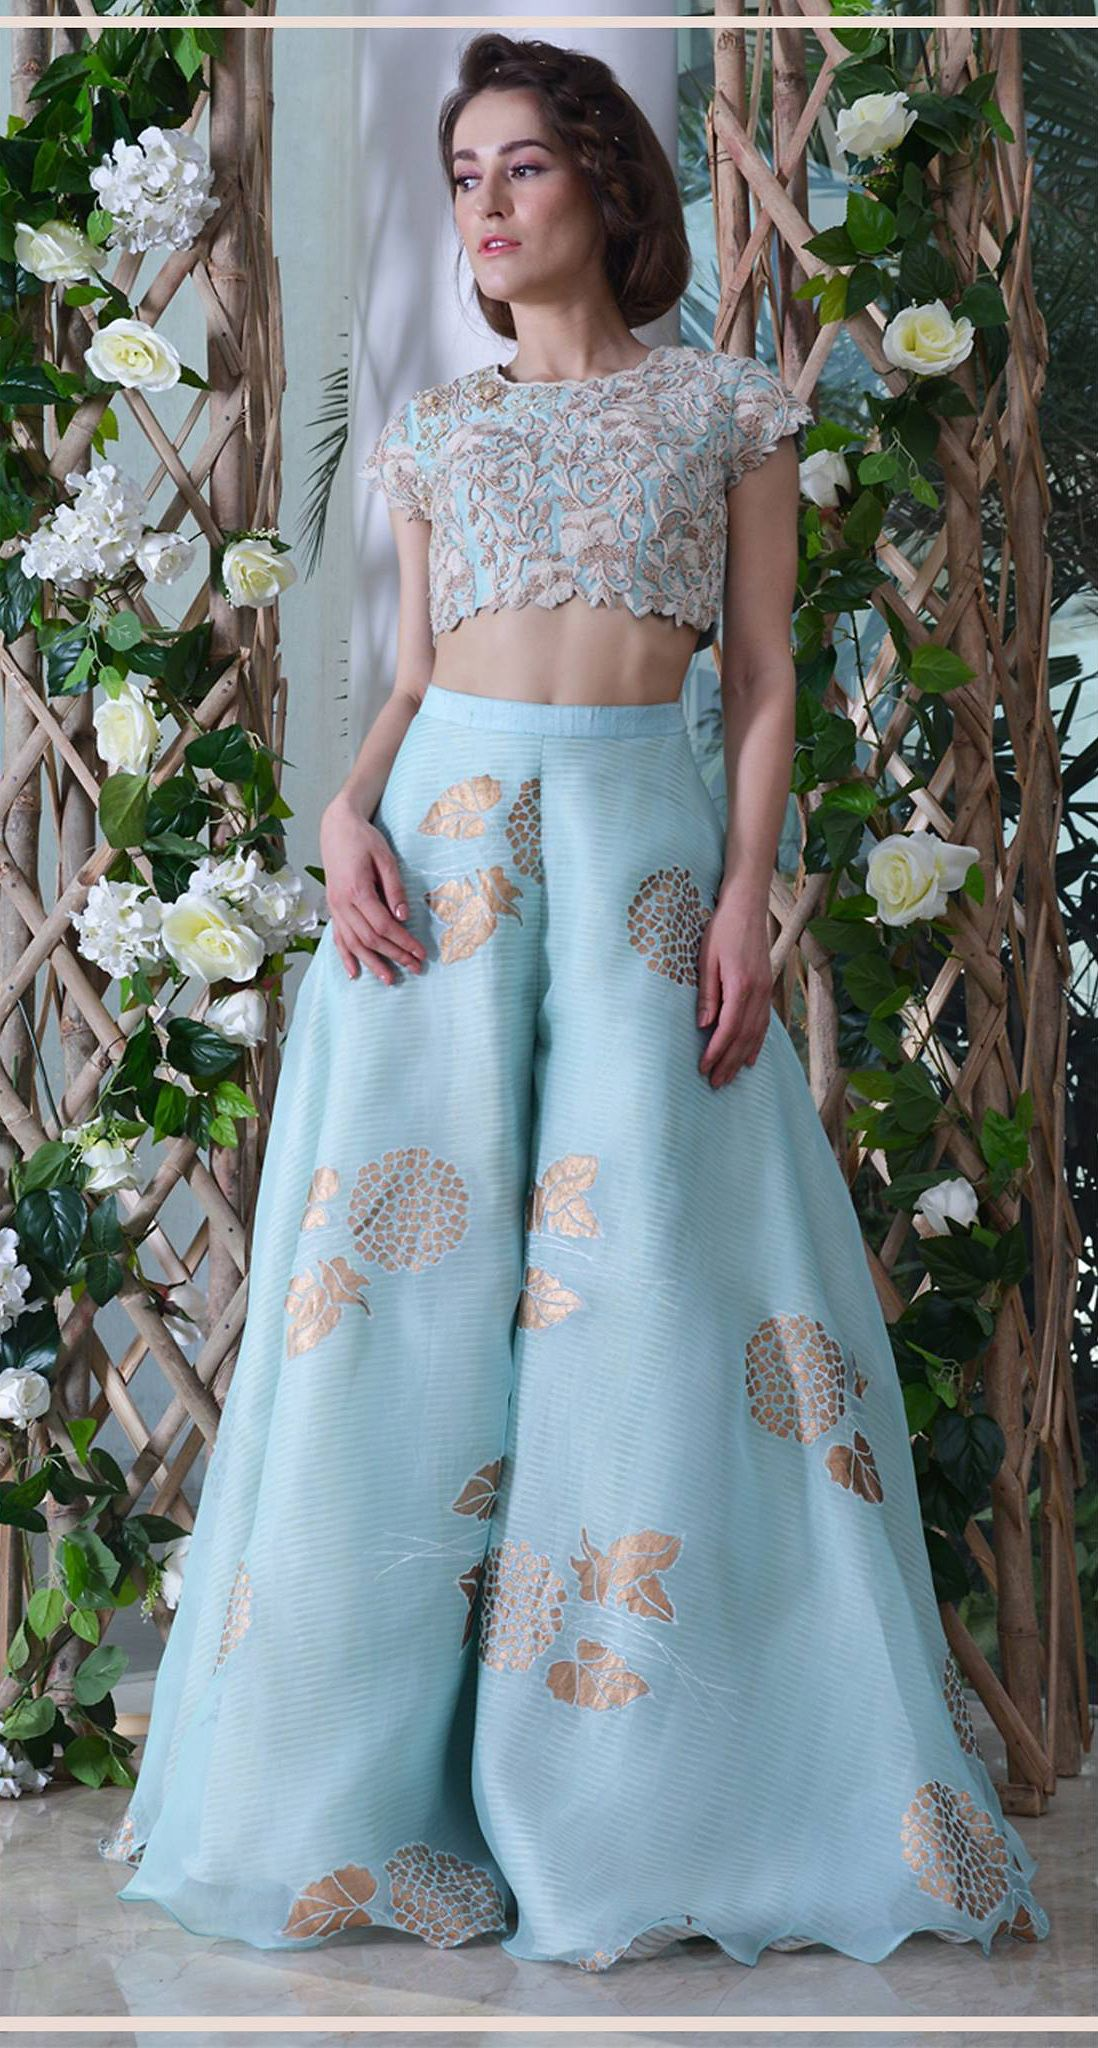 Yashodhara crop top paired with flaired palazzos | Indian/Asian ...